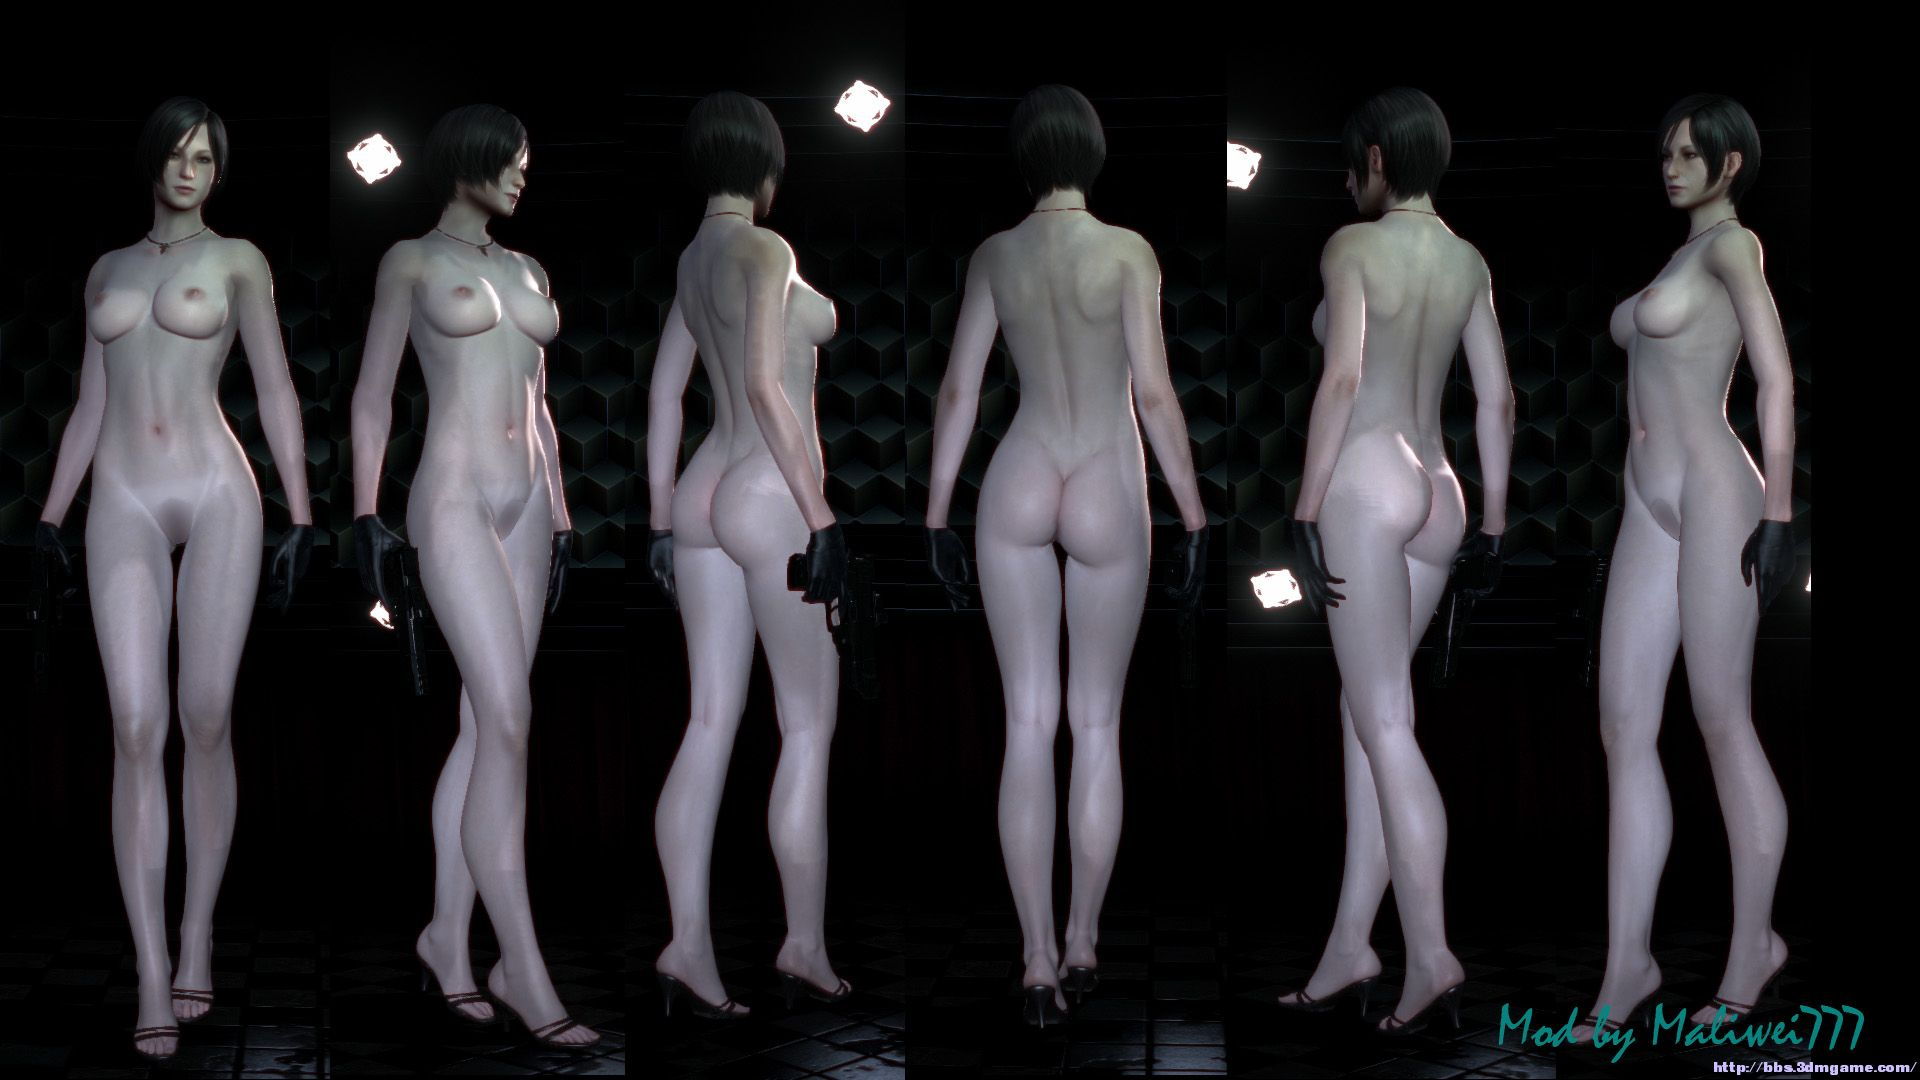 Legend of zelda nudity mods porn pictures